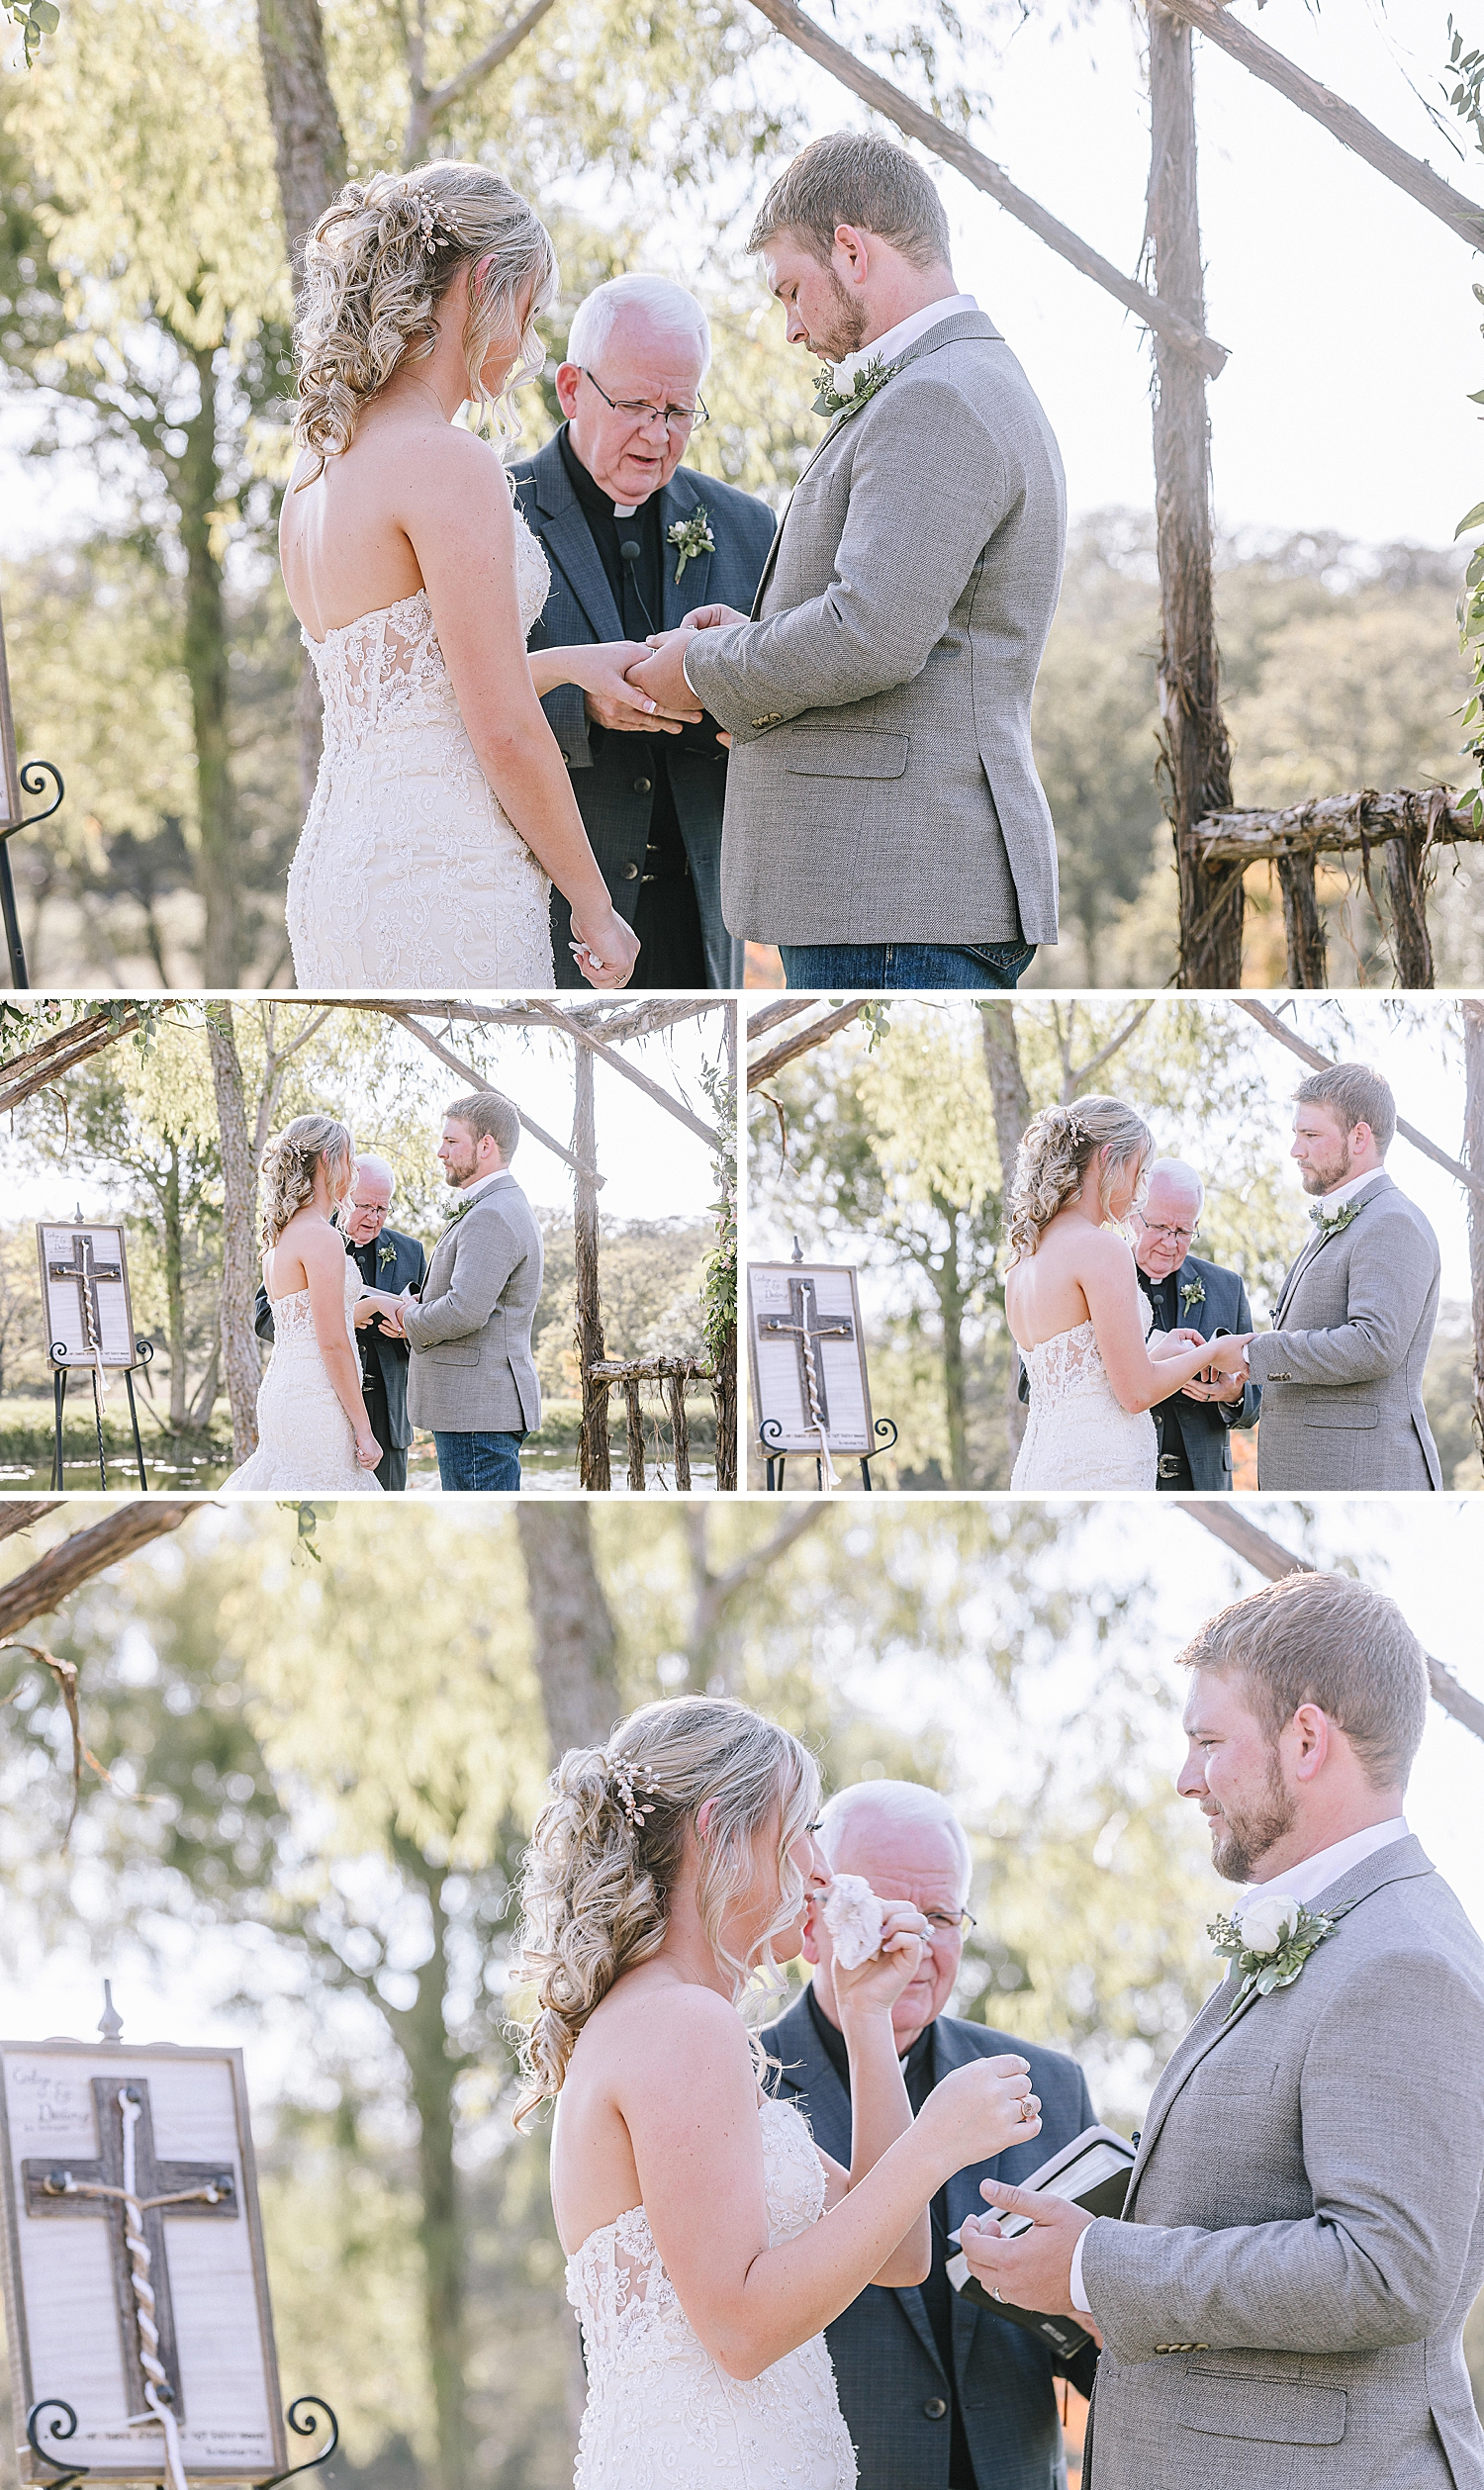 Rackler-Ranch-LaVernia-Texas-Wedding-Carly-Barton-Photography_0071.jpg